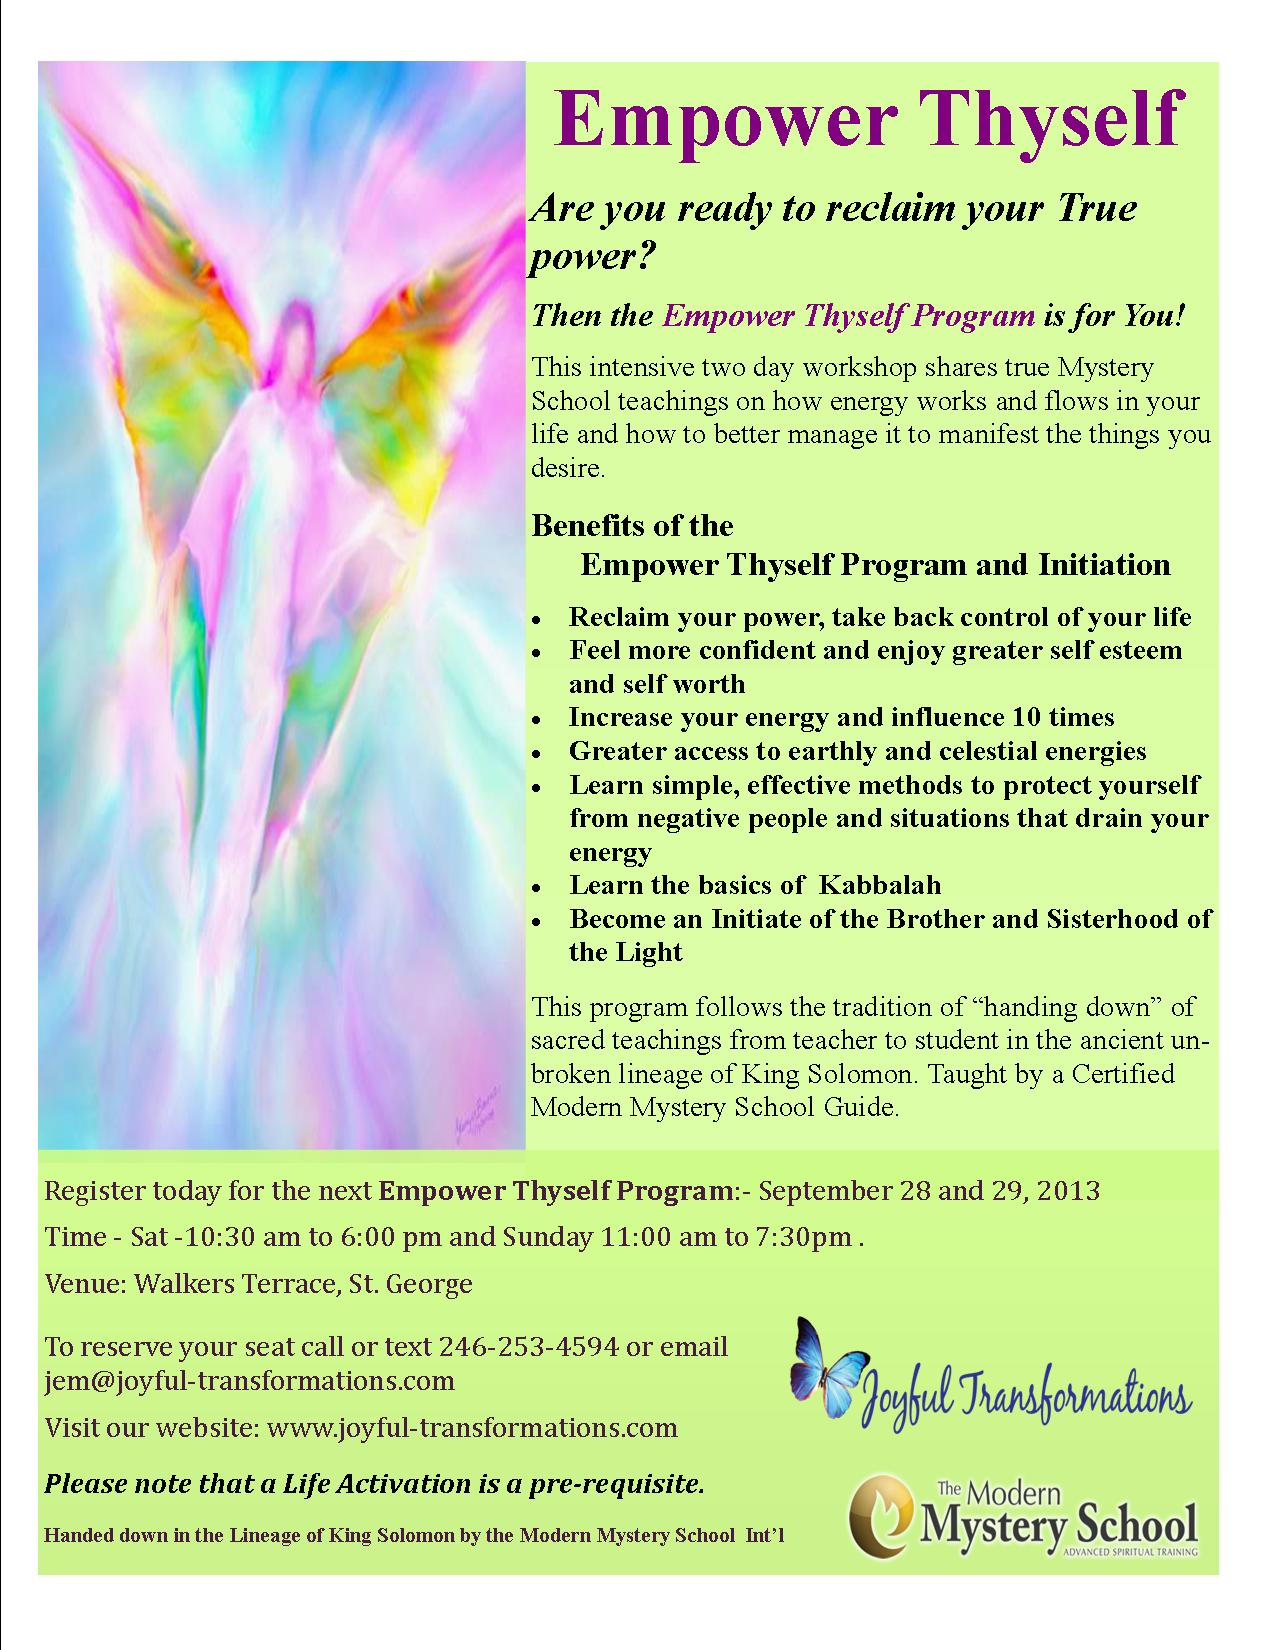 Empower Thyself - September 2013